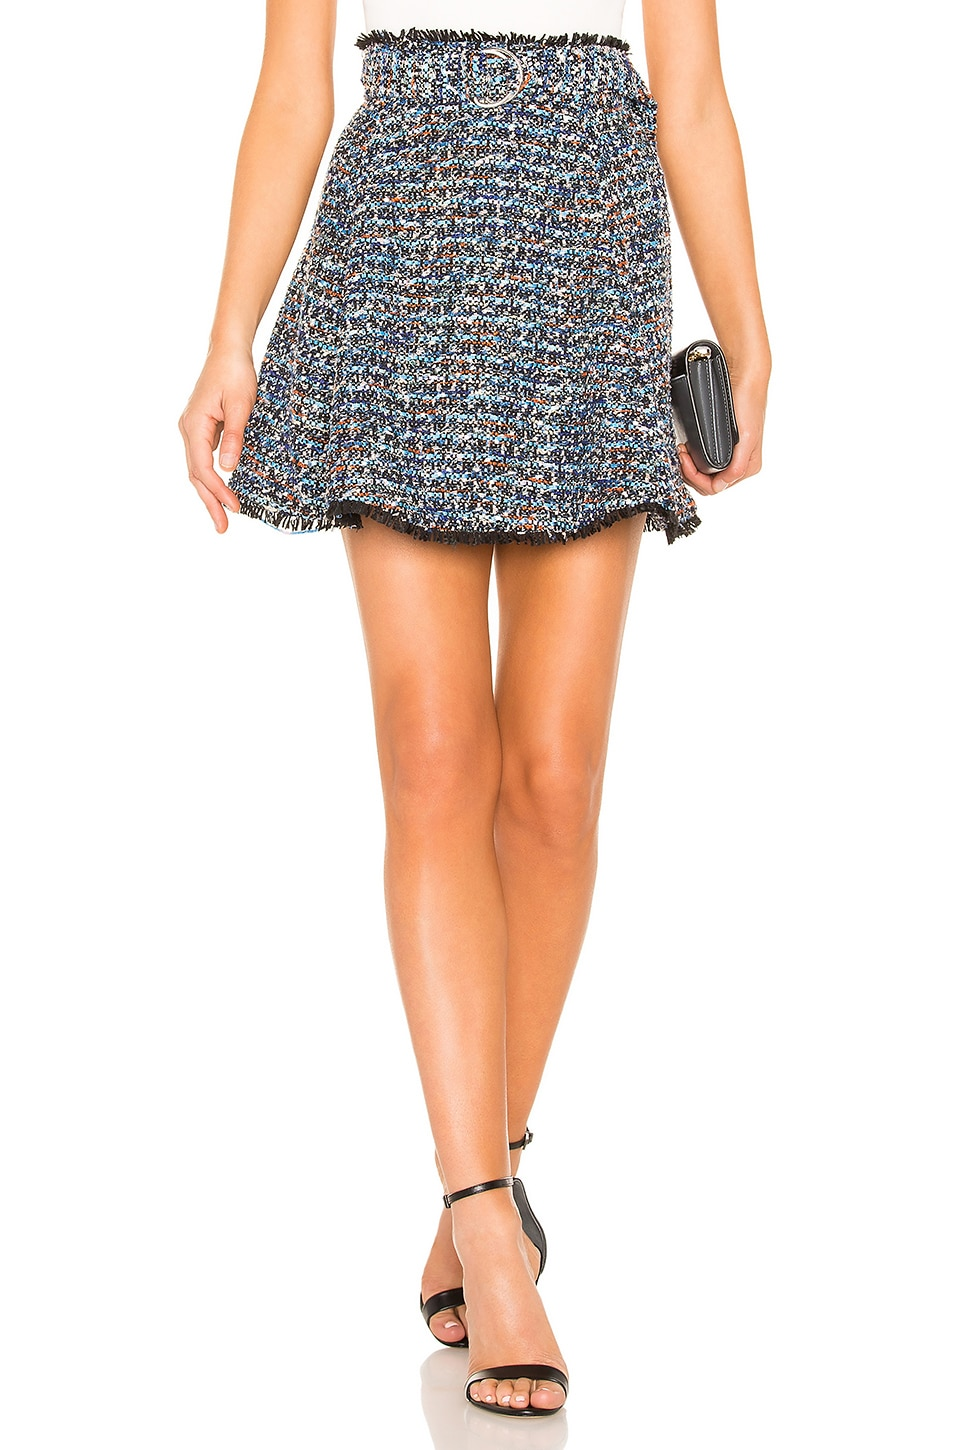 Lovers + Friends Aiden Mini Skirt in Blue Multi